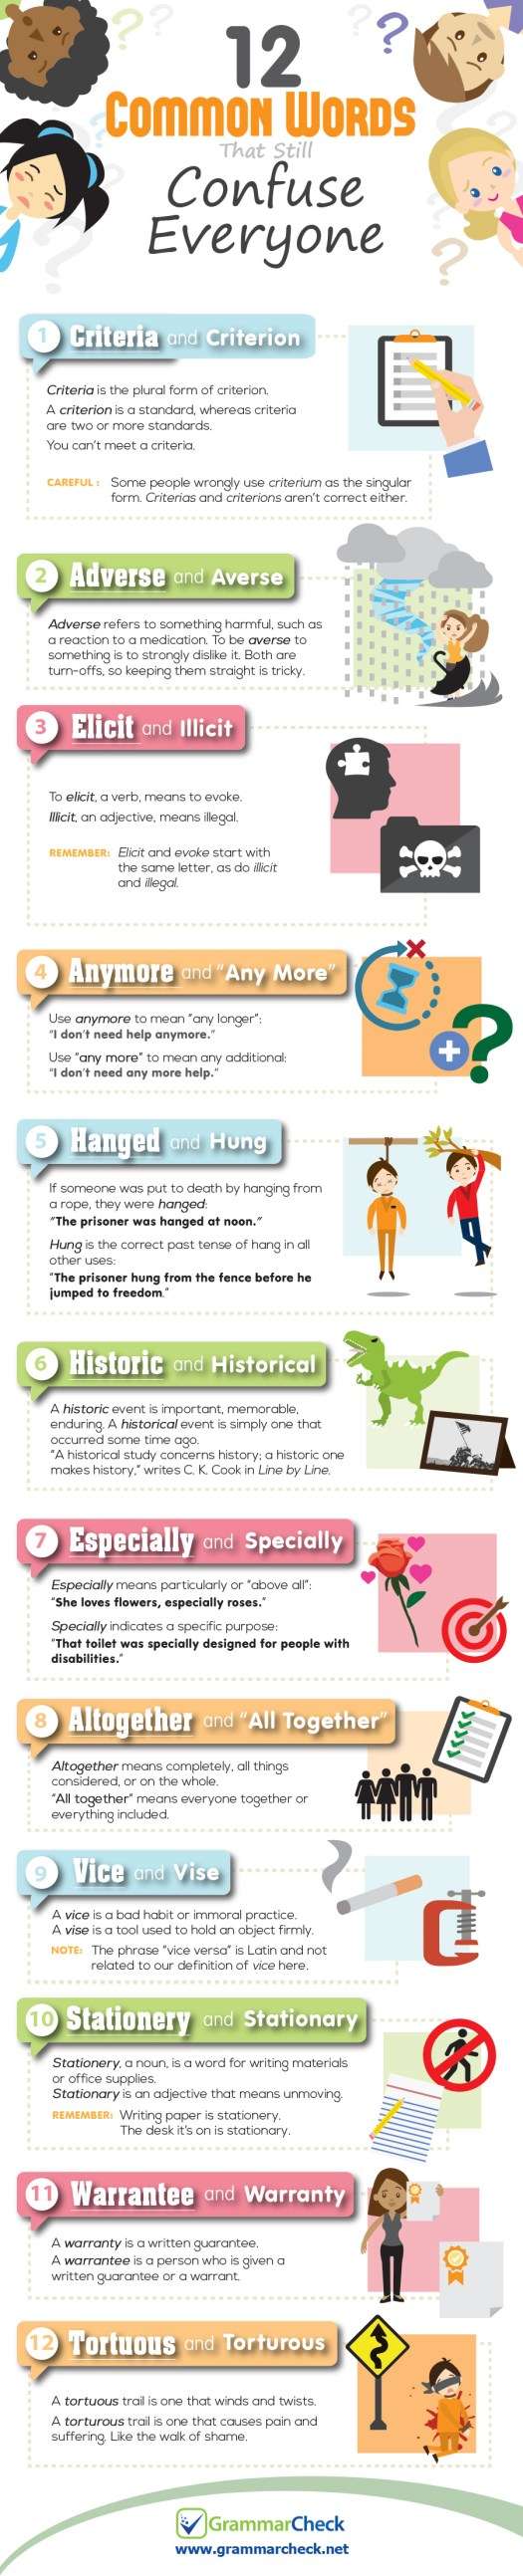 12 Common Words That Still Confuse Everyone (Infographic)